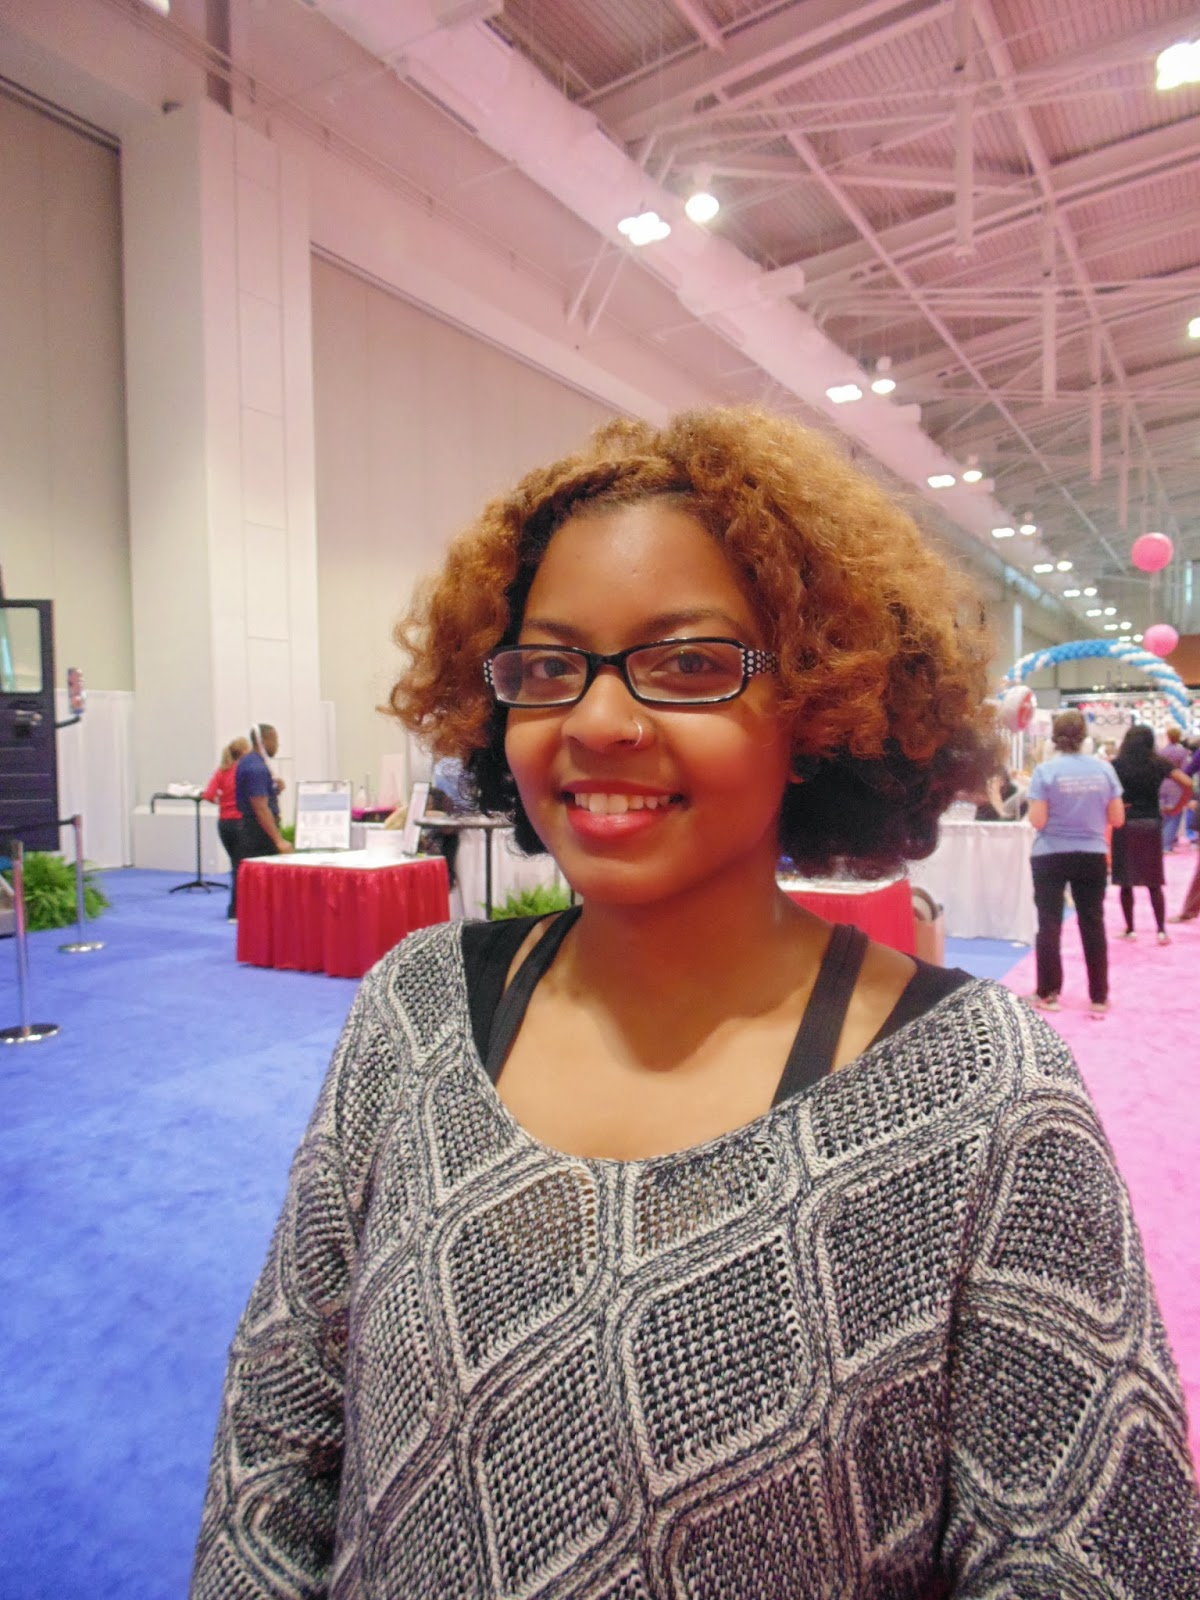 Naturals nashville southern womens nashville natural hair show 2014